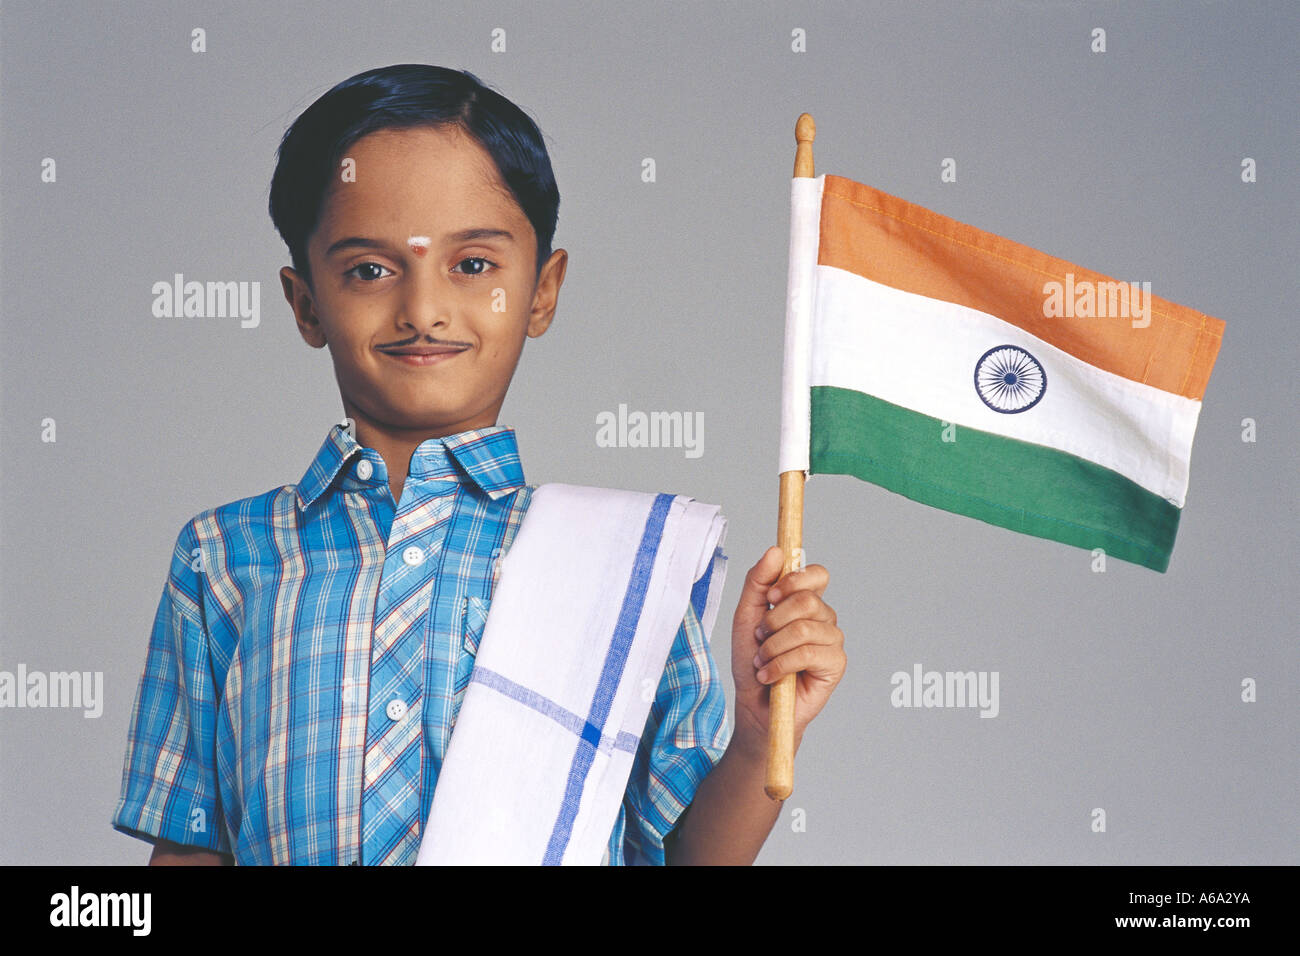 South Indian Boy fancy Dress In Traditional Costume Holding The Indian Flag MR#502  sc 1 st  Alamy & South Indian Boy fancy Dress In Traditional Costume Holding The ...